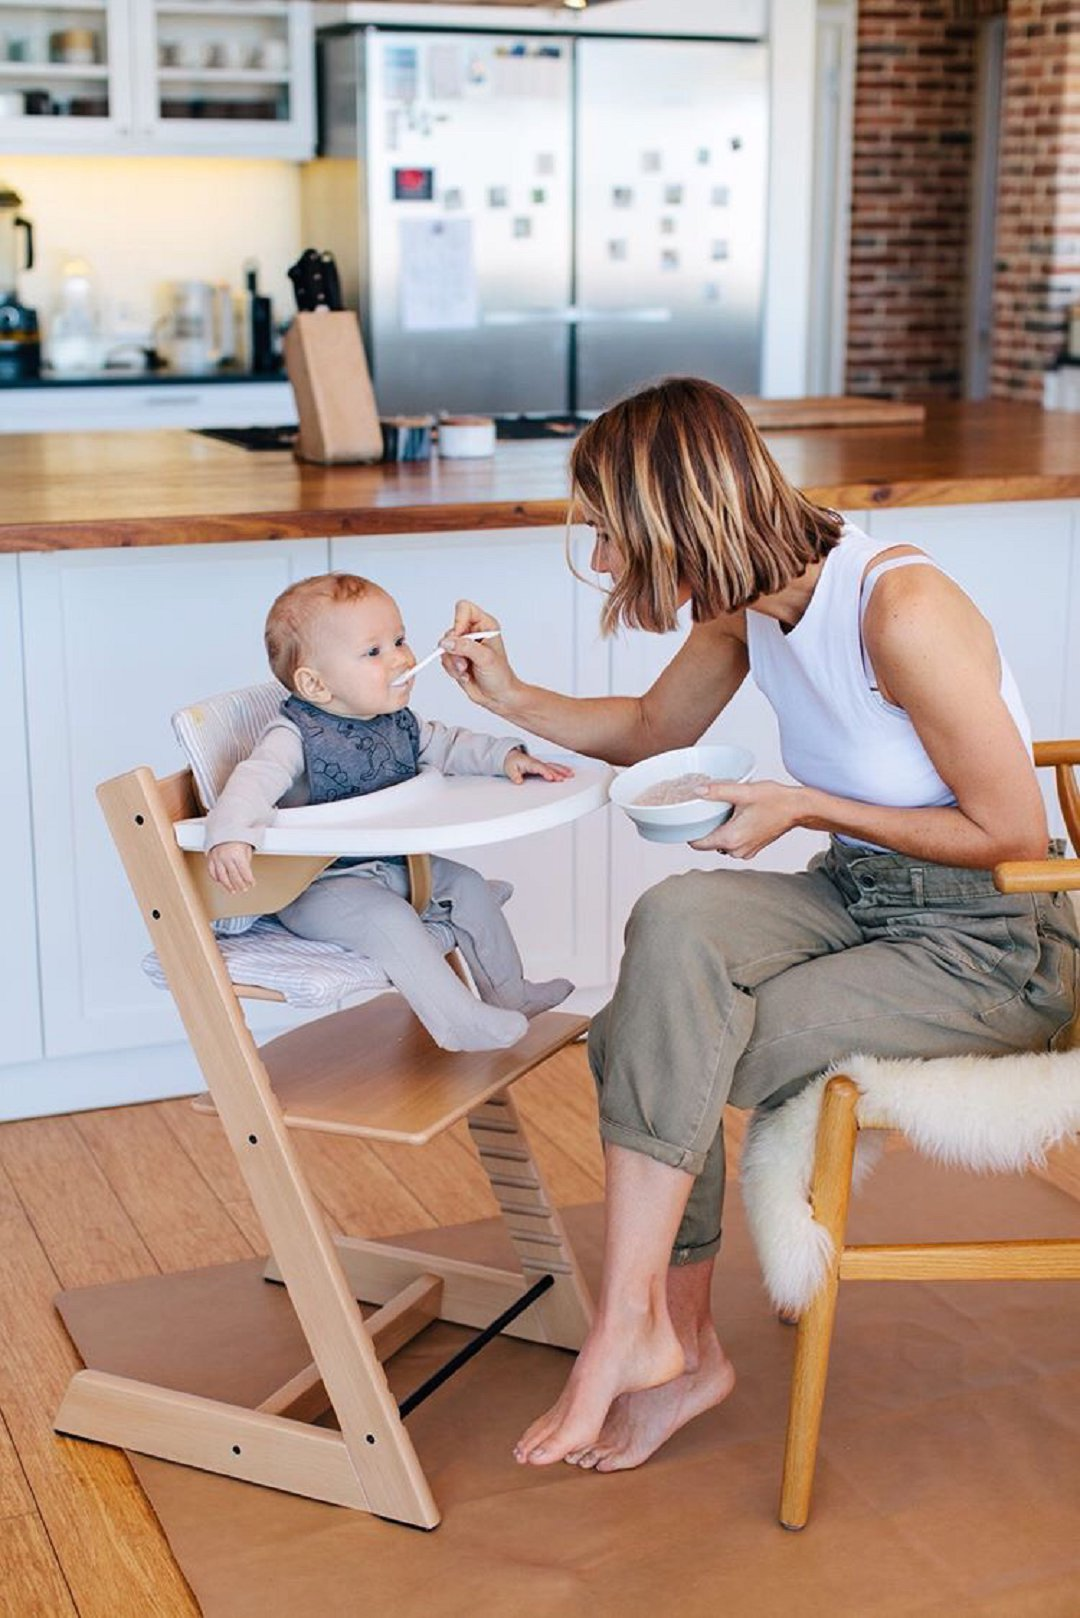 Products for mom, your home and kids